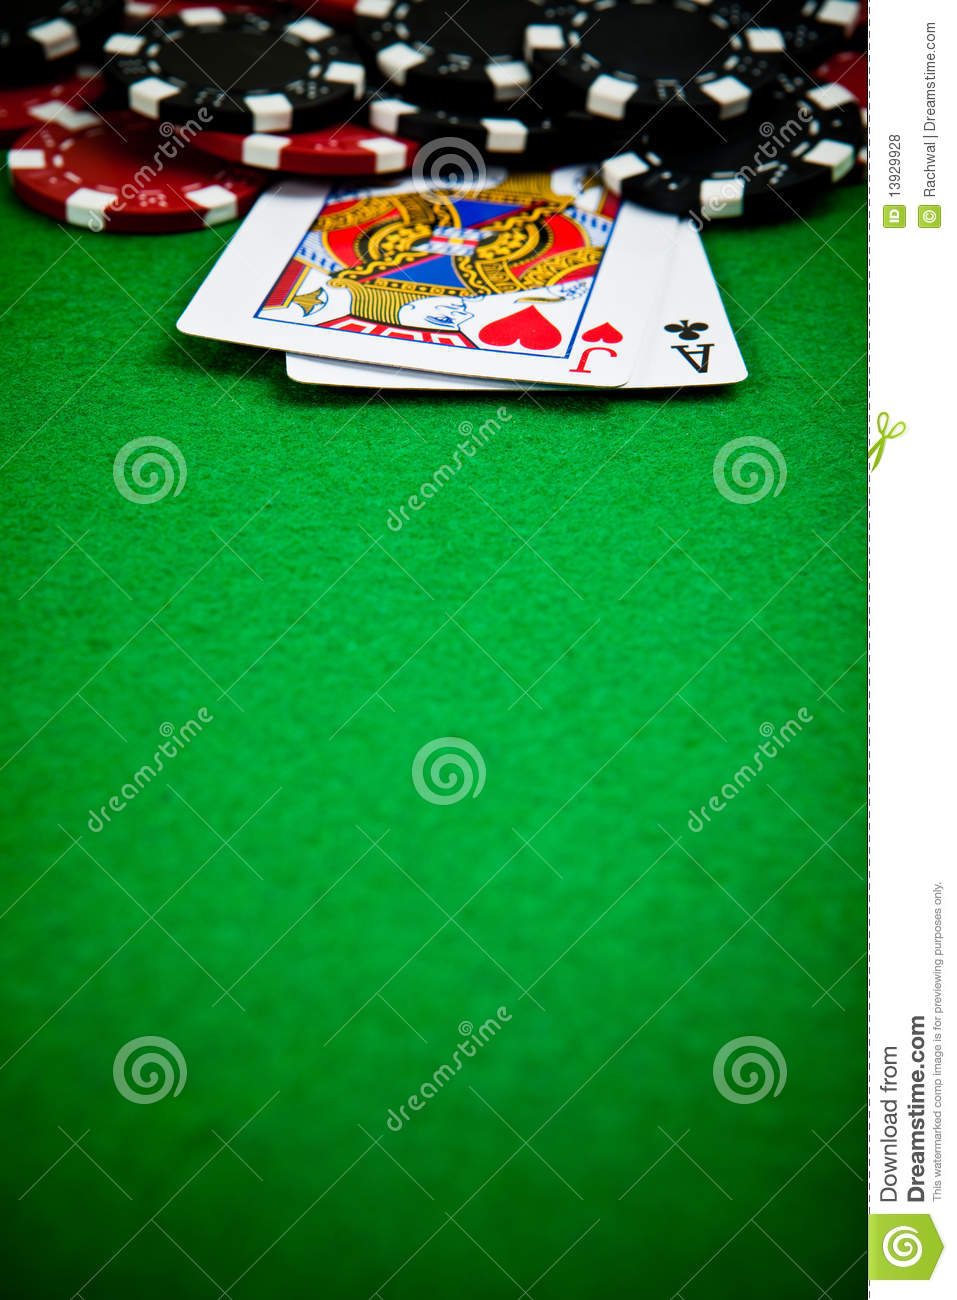 Poker Chips With Cards Royalty Free Stock Photos Image